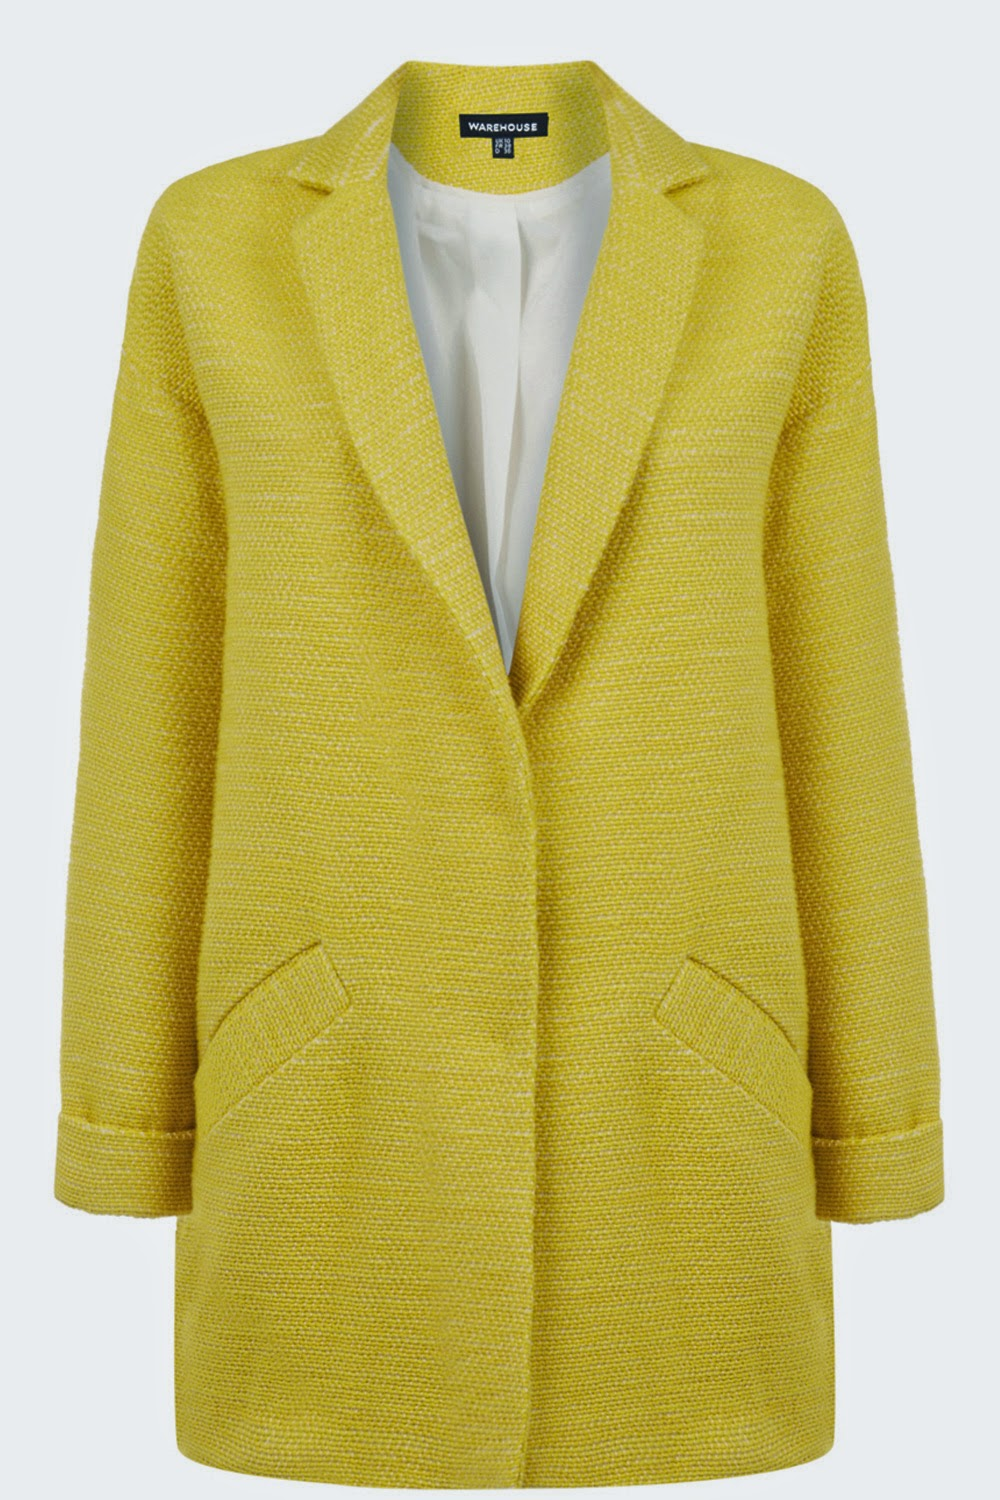 warehouse yellow coat, yellow boucle coat,